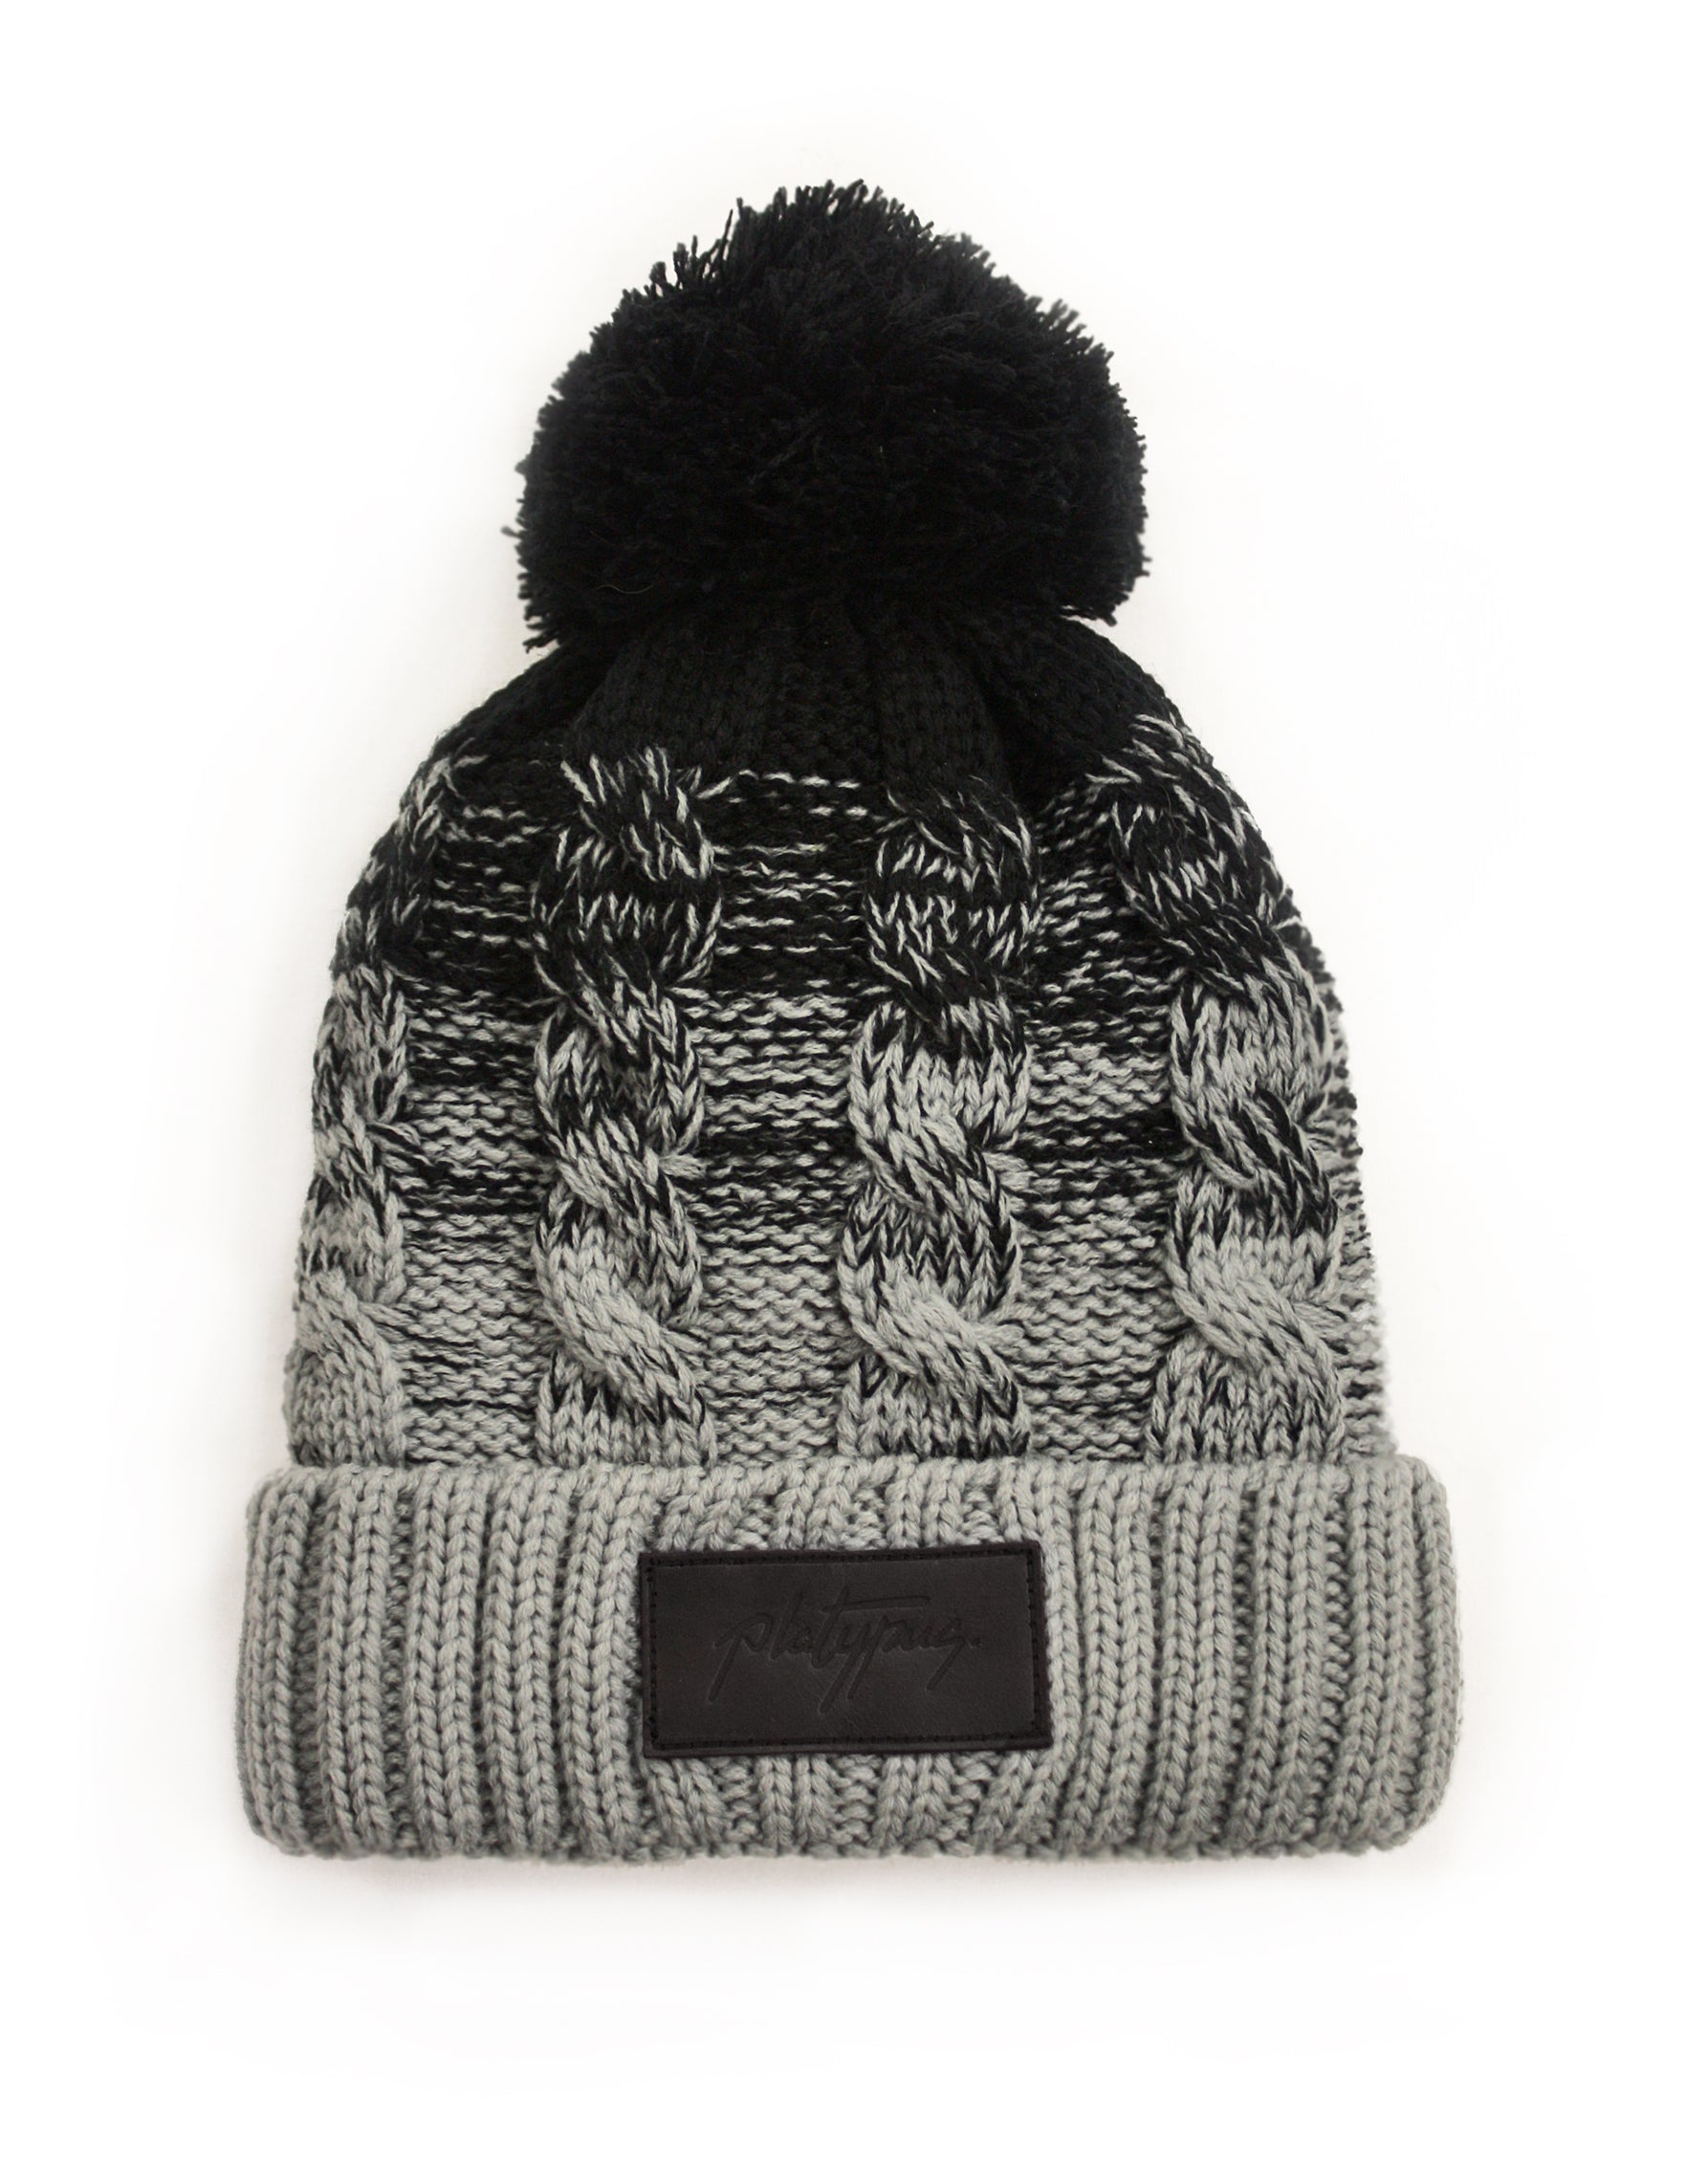 6414ab1110c Leather patch black grey ombre knitted beanie hat free shipping from  platypus uk streetwear jpg 1786x2262